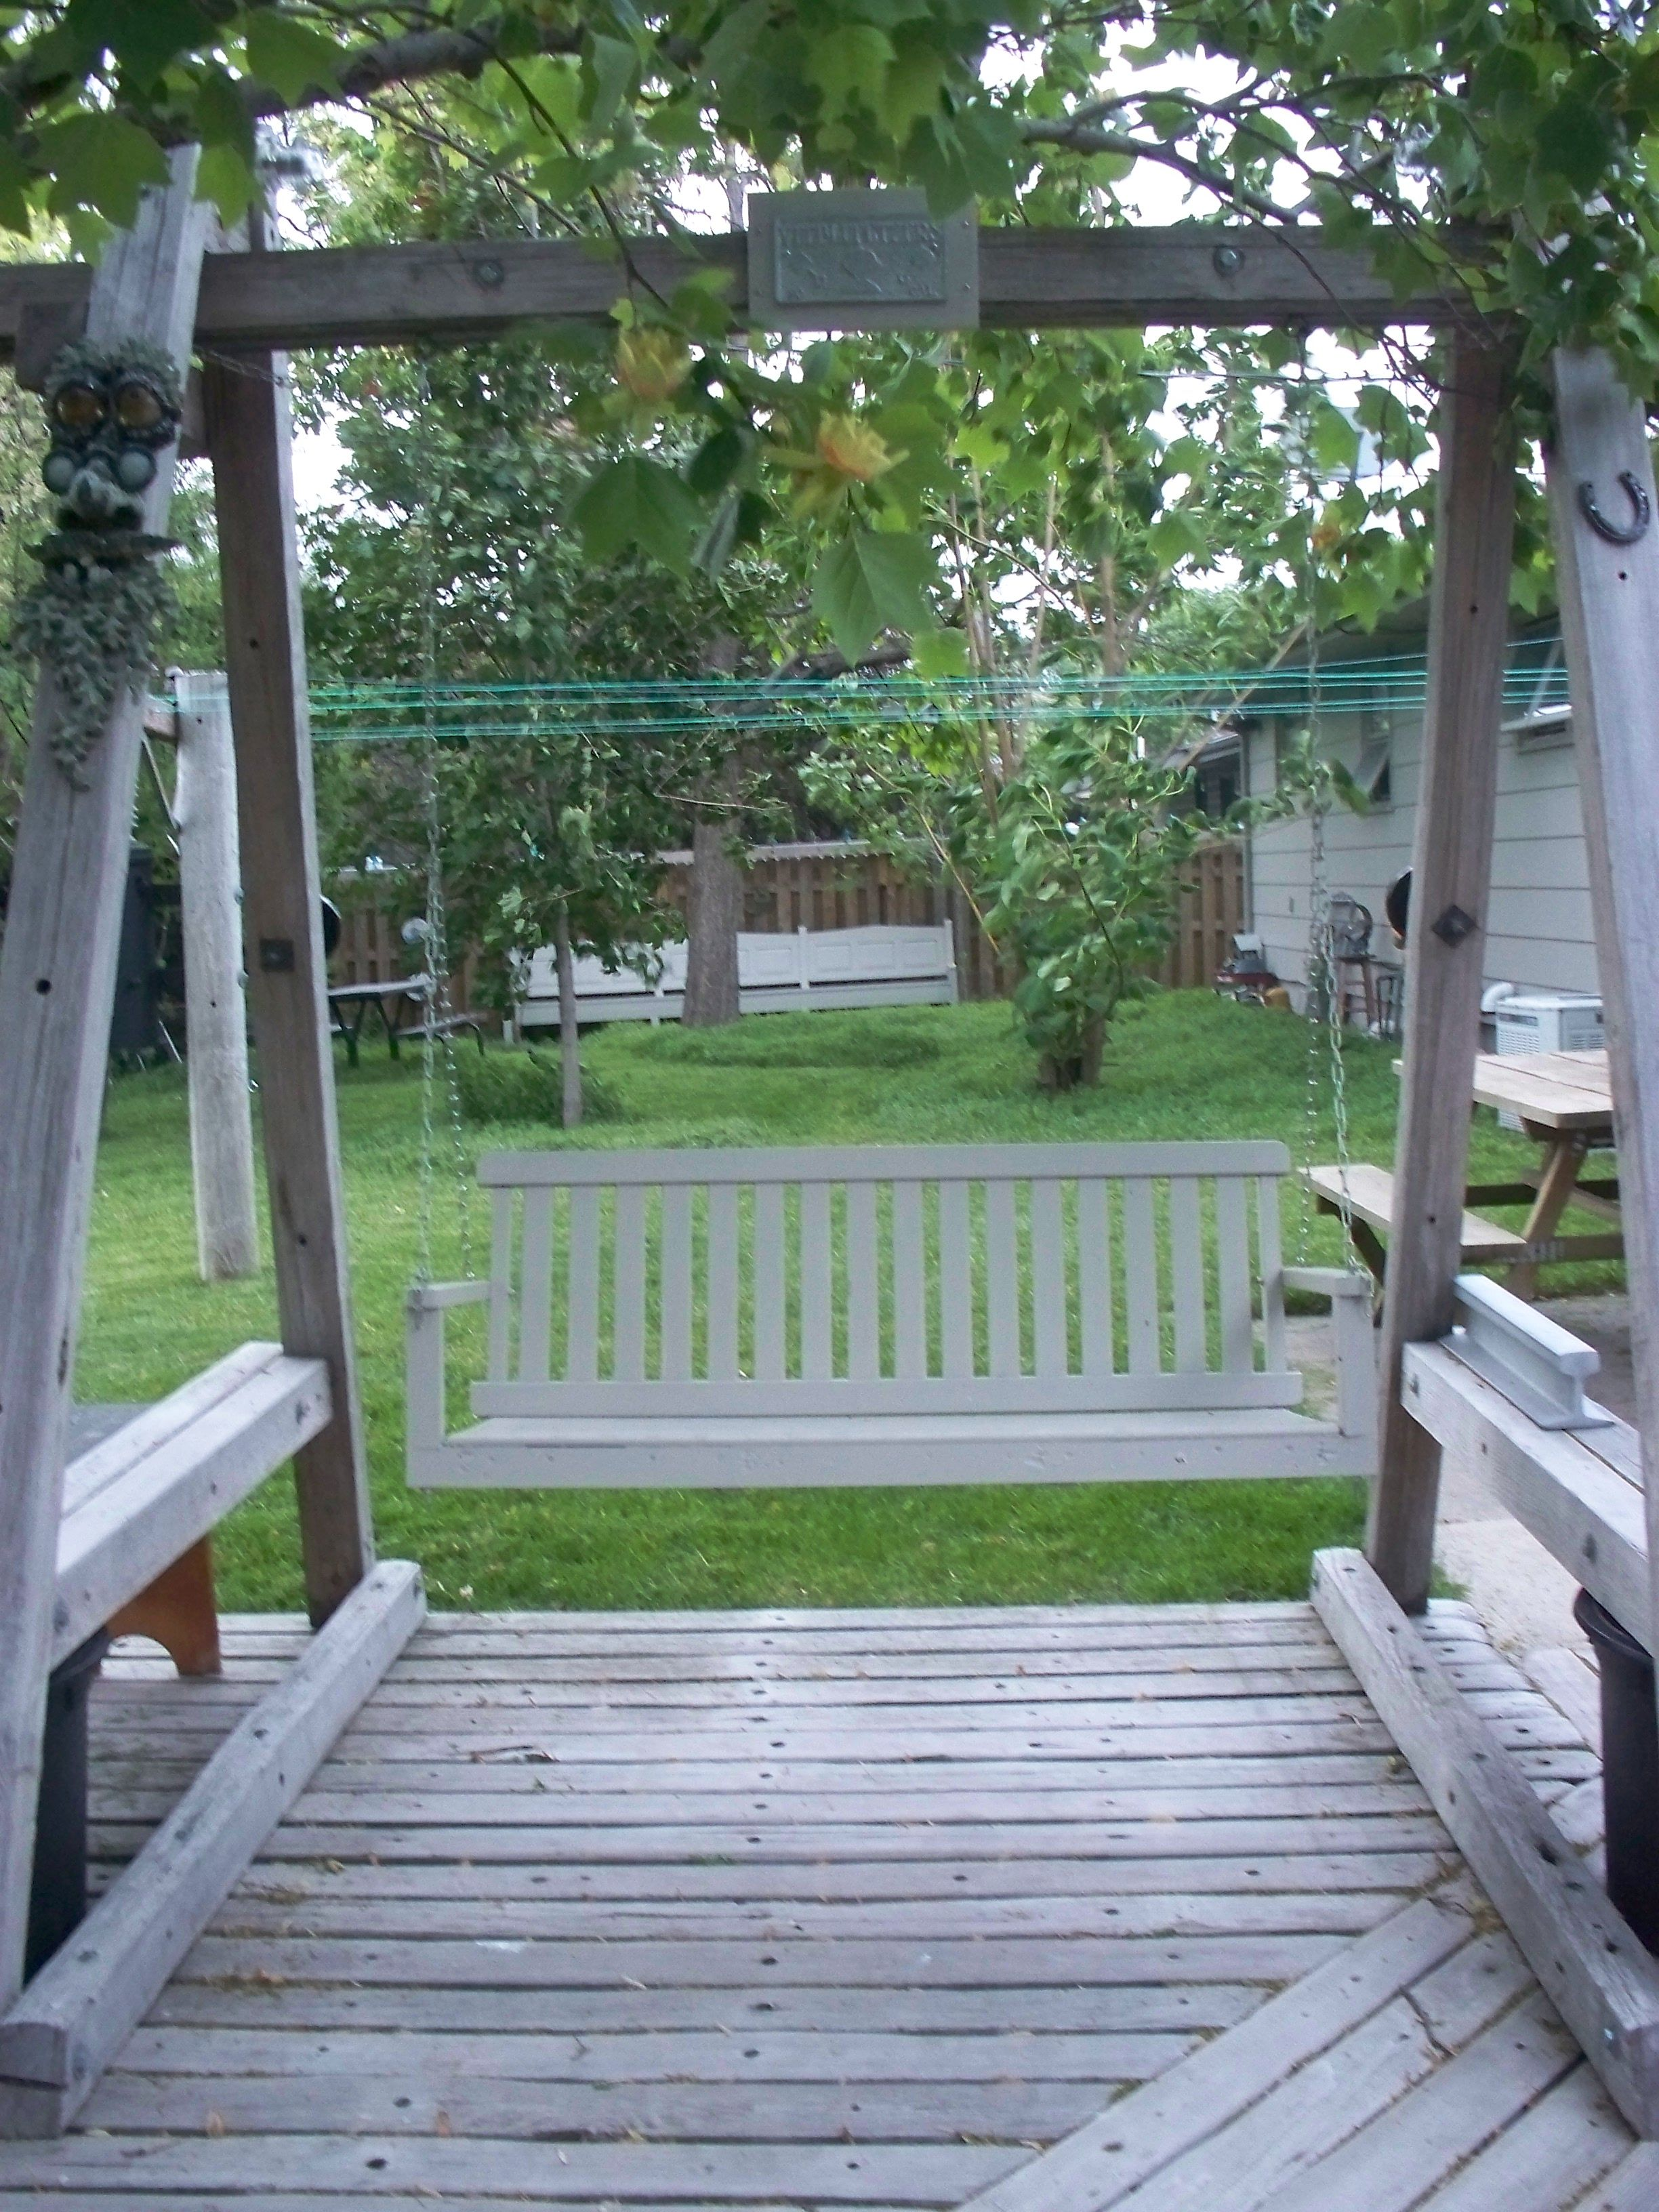 The Old Porch Swing Stands Alone Porch Swing Little Cottage Porch